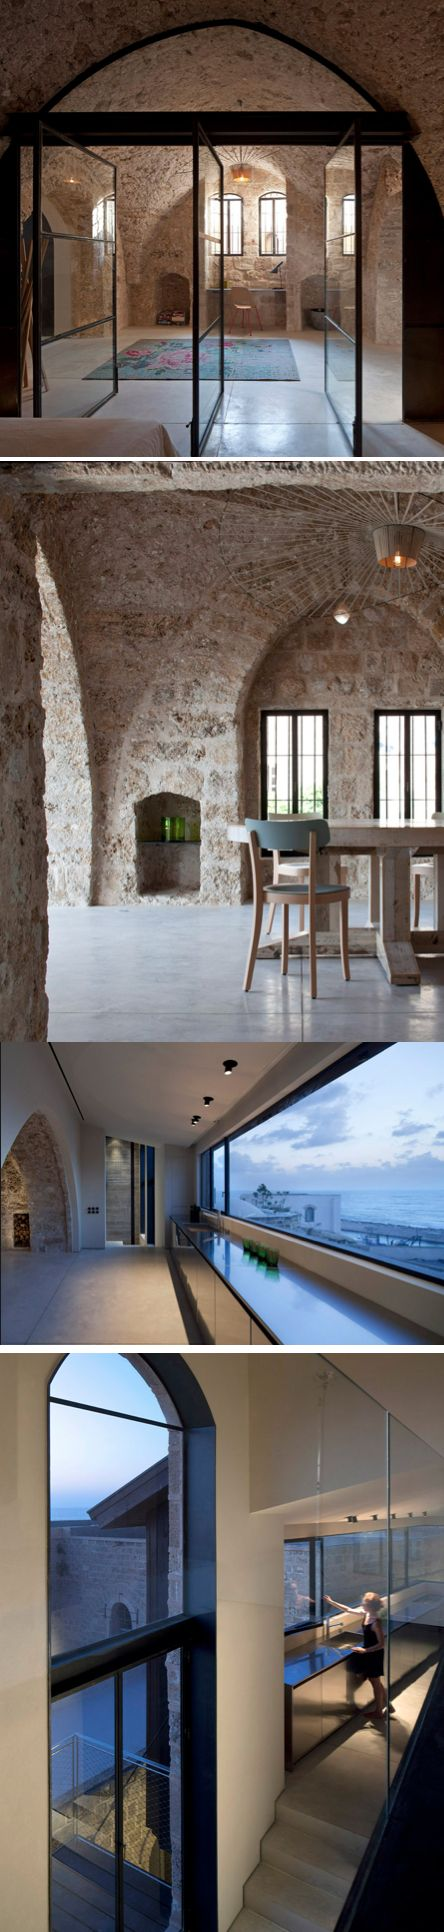 300+ Year-Old House Renovation in Tel Aviv, Israel